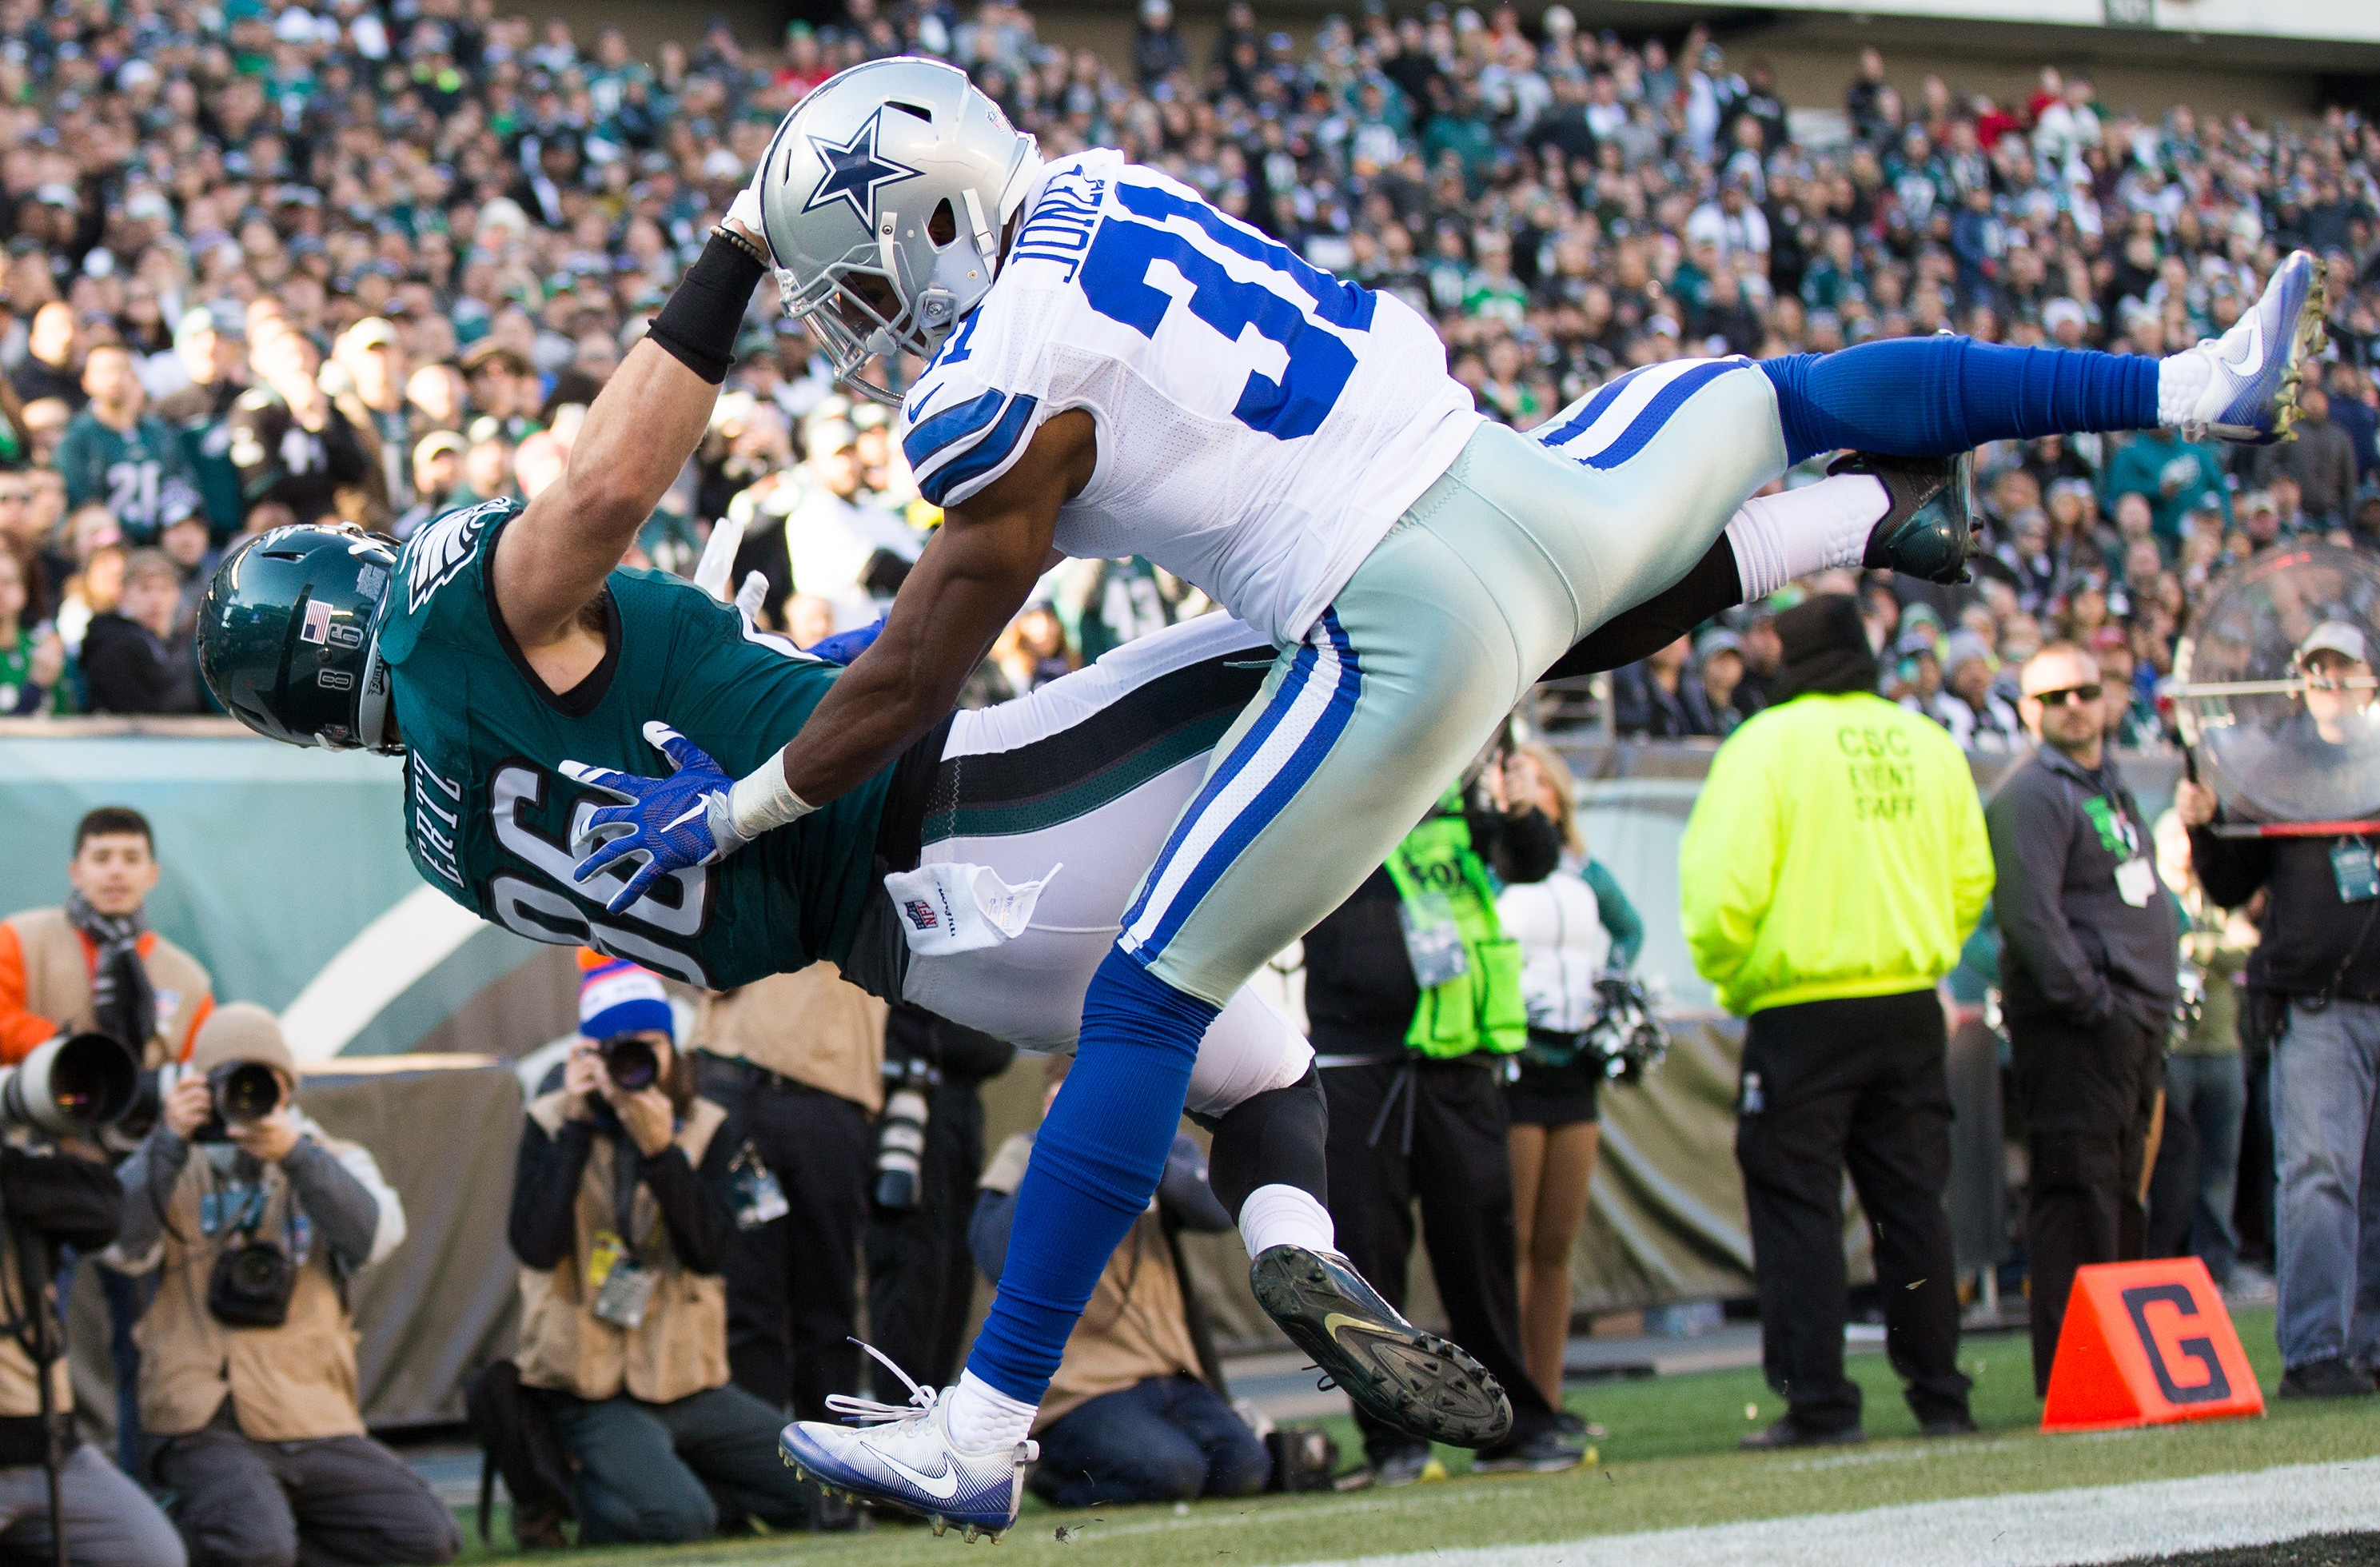 9781206-nfl-dallas-cowboys-at-philadelphia-eagles